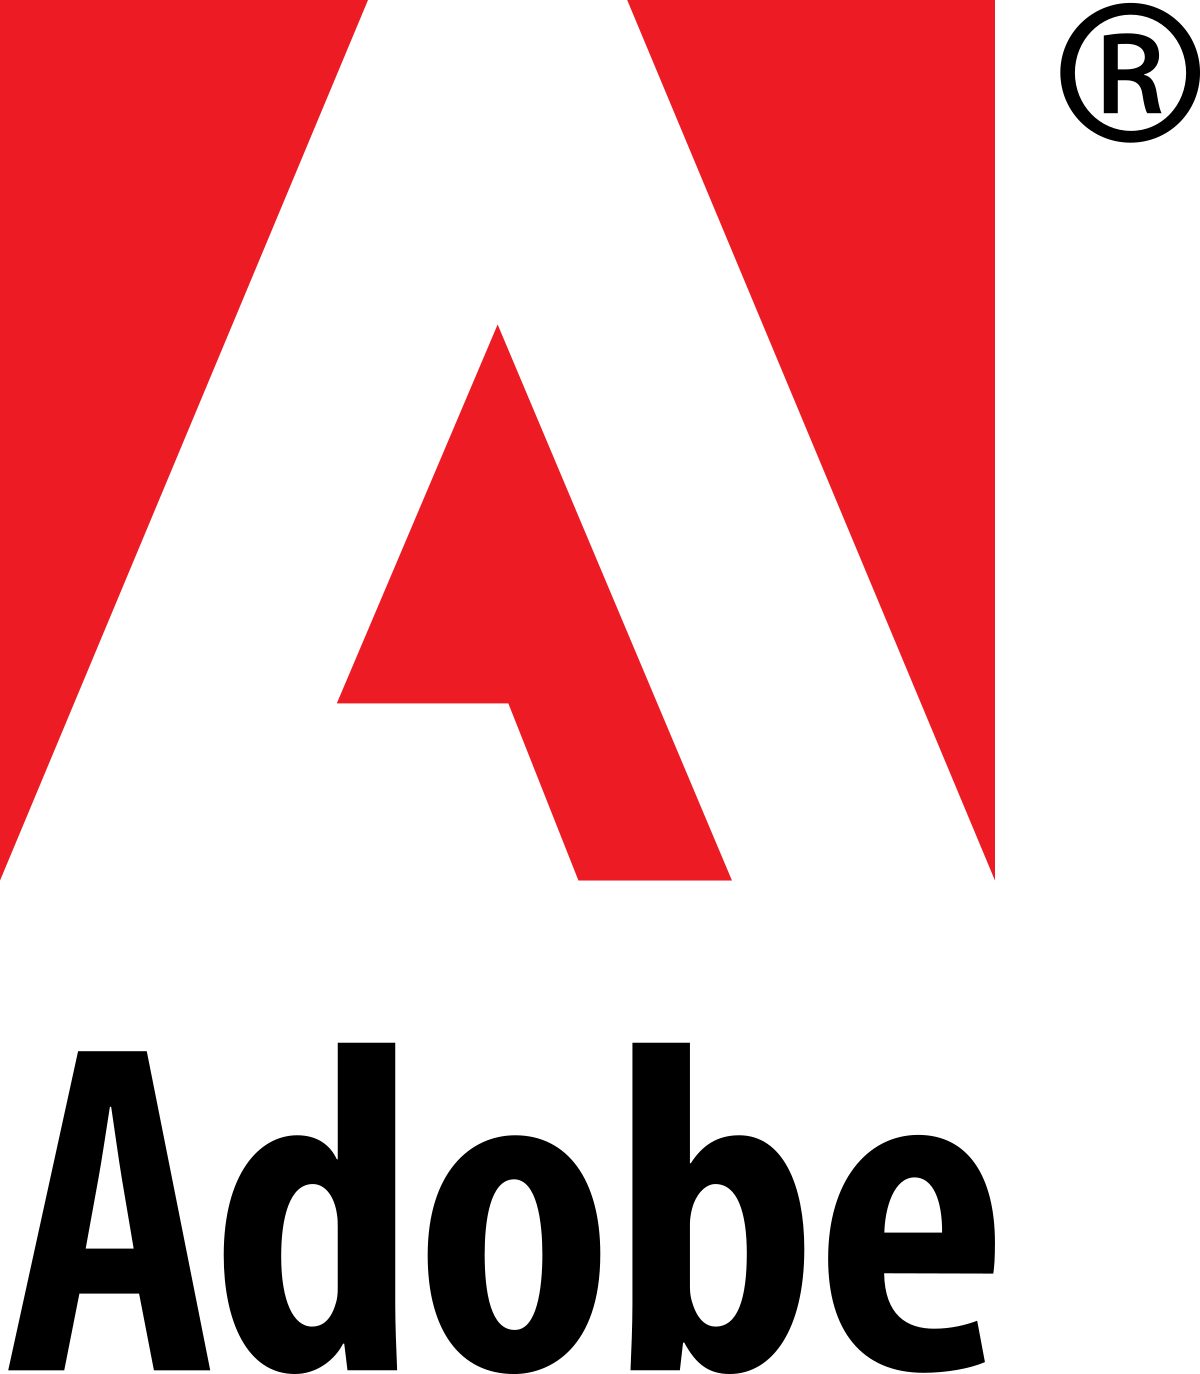 Adobe releases an urgent update to patch up to 82 security vulnerabilities